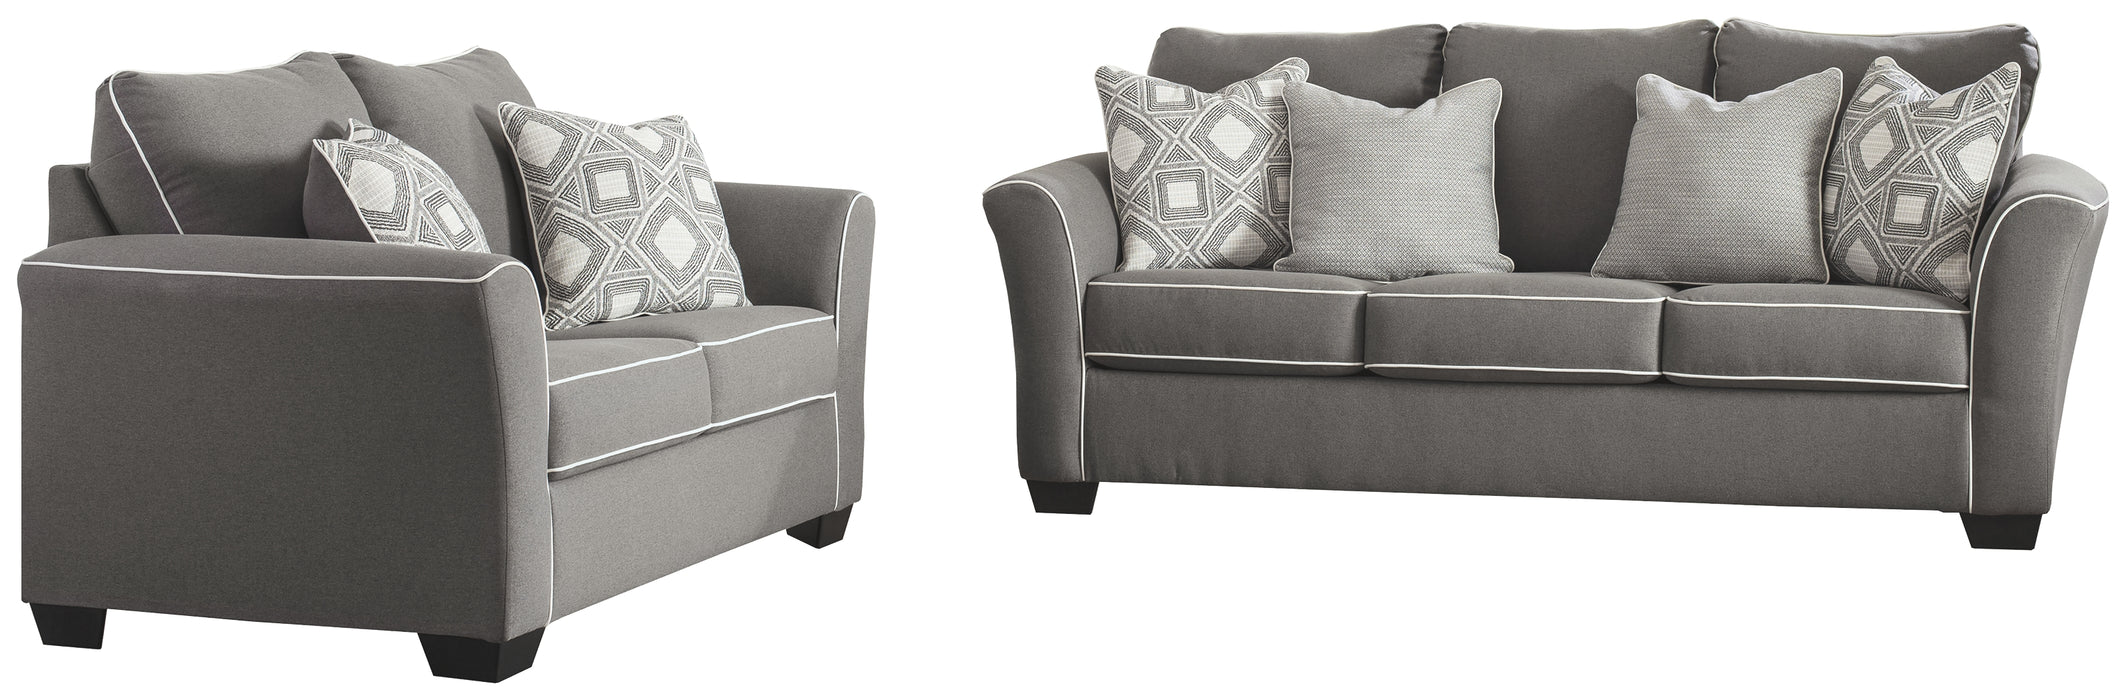 Domani Signature Design 2-Piece Living Room Set image